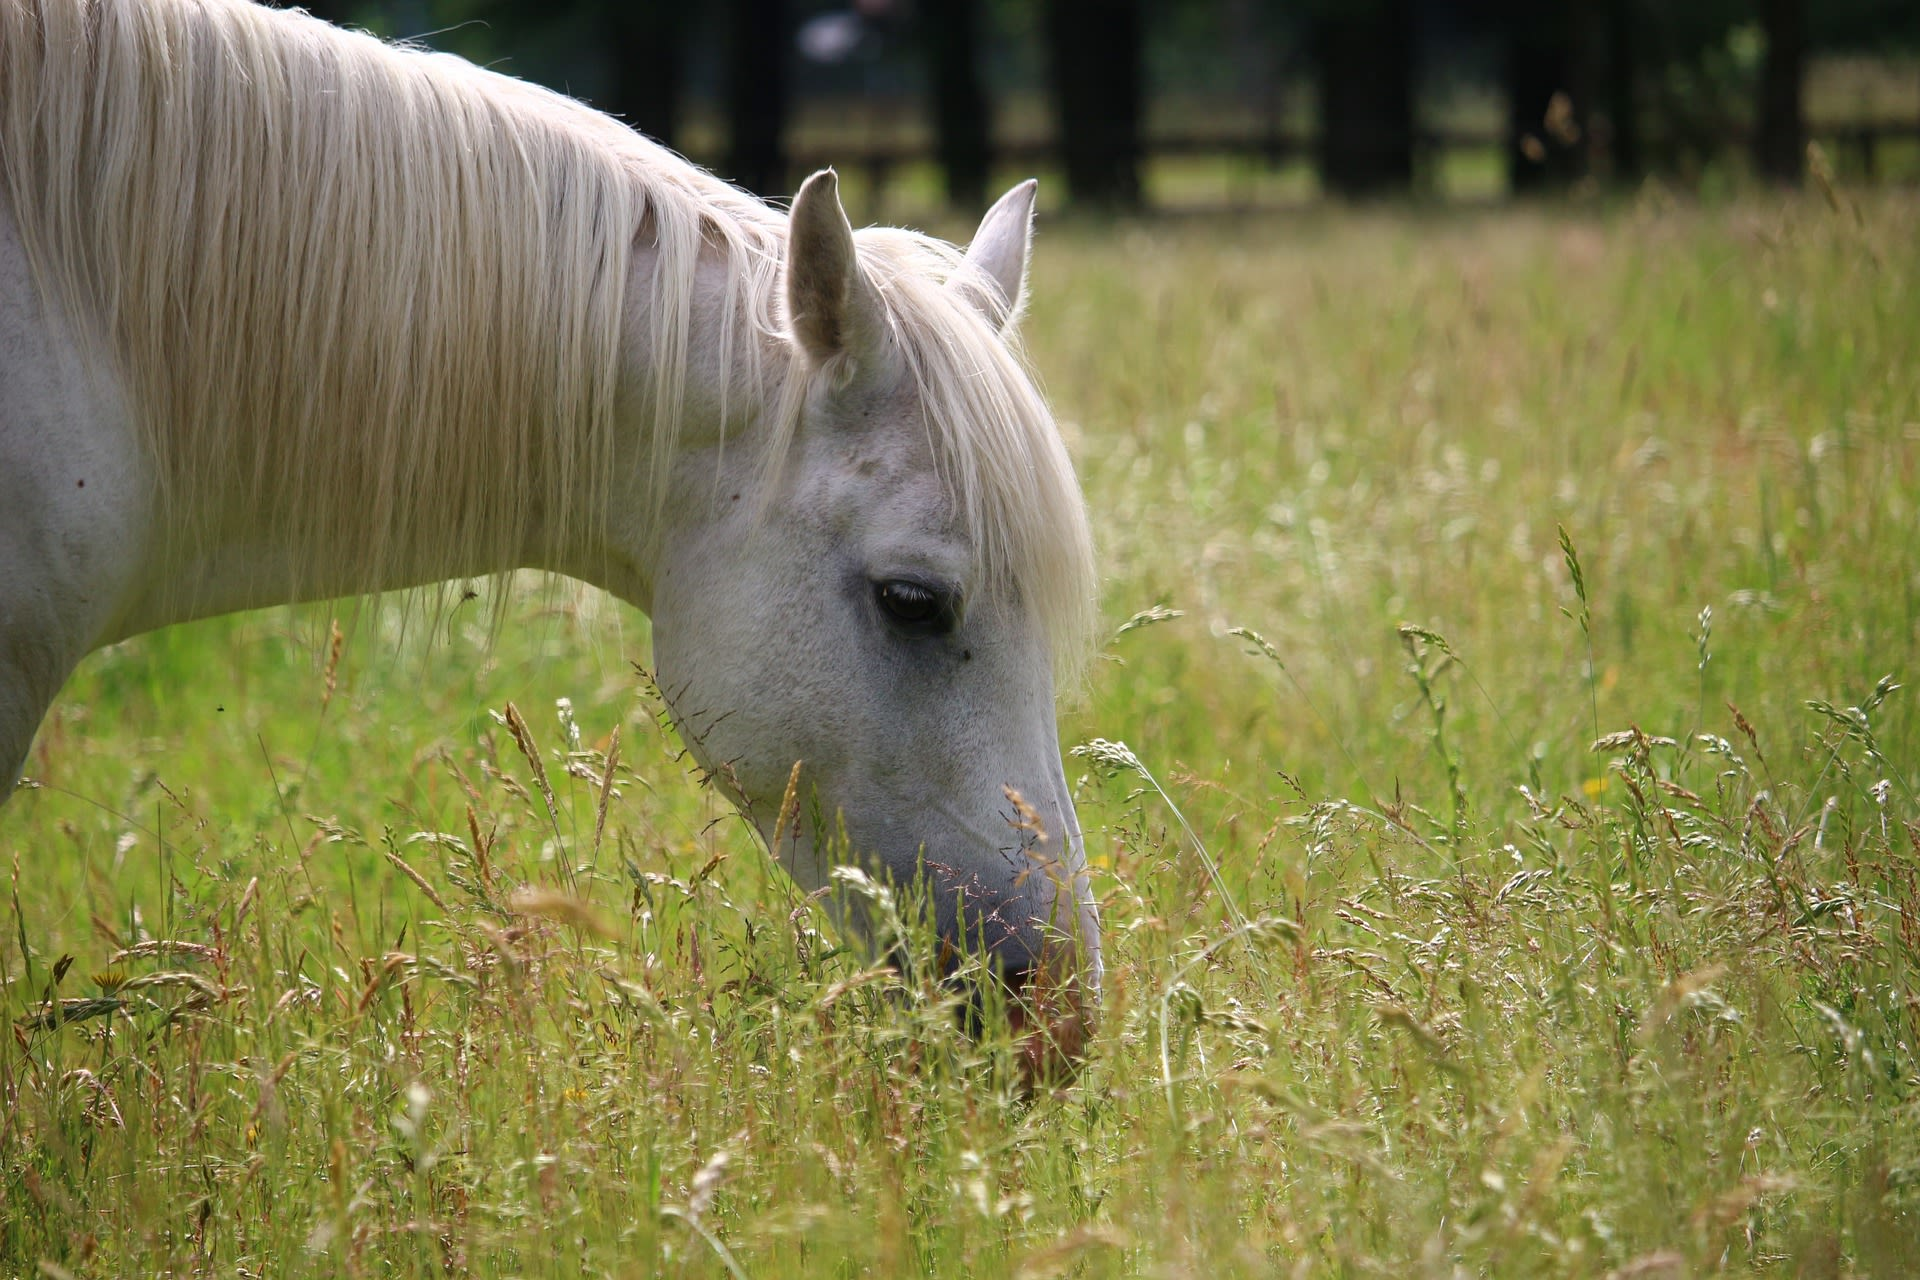 Congress Passes Tax Bill With Horse Benefits